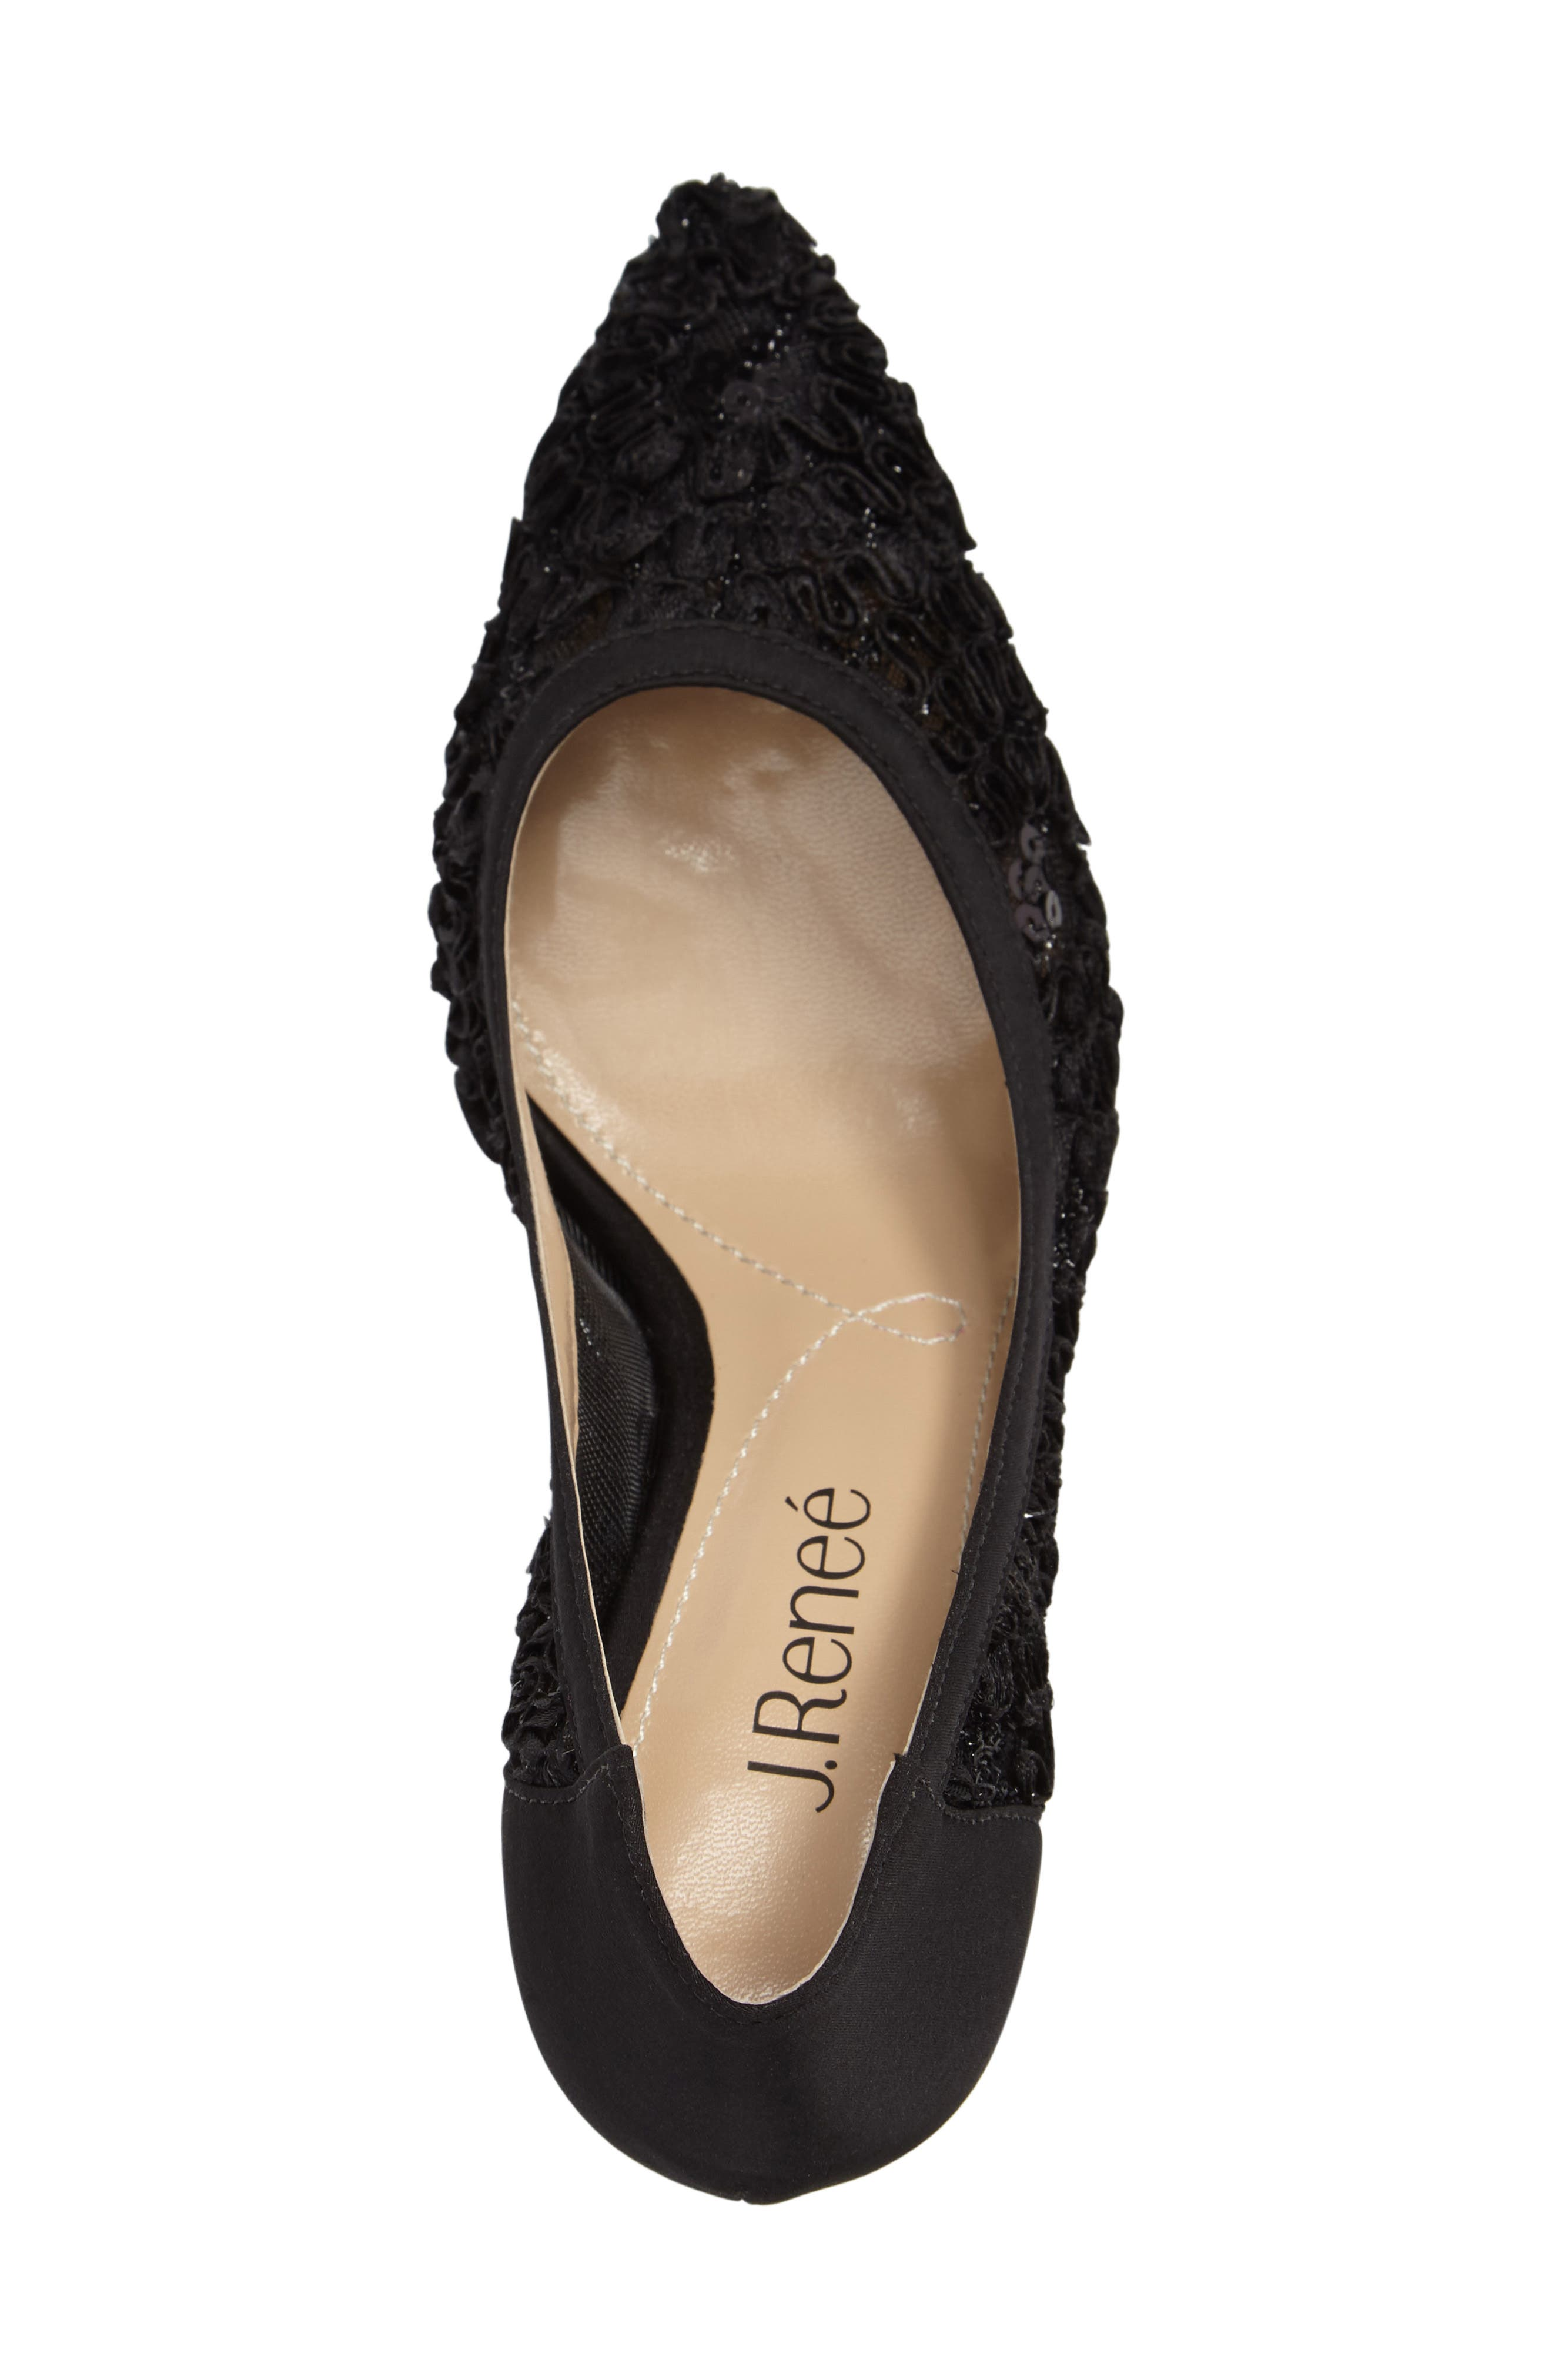 Camellia Pointy Toe Pump,                             Alternate thumbnail 3, color,                             BLACK LACE FABRIC